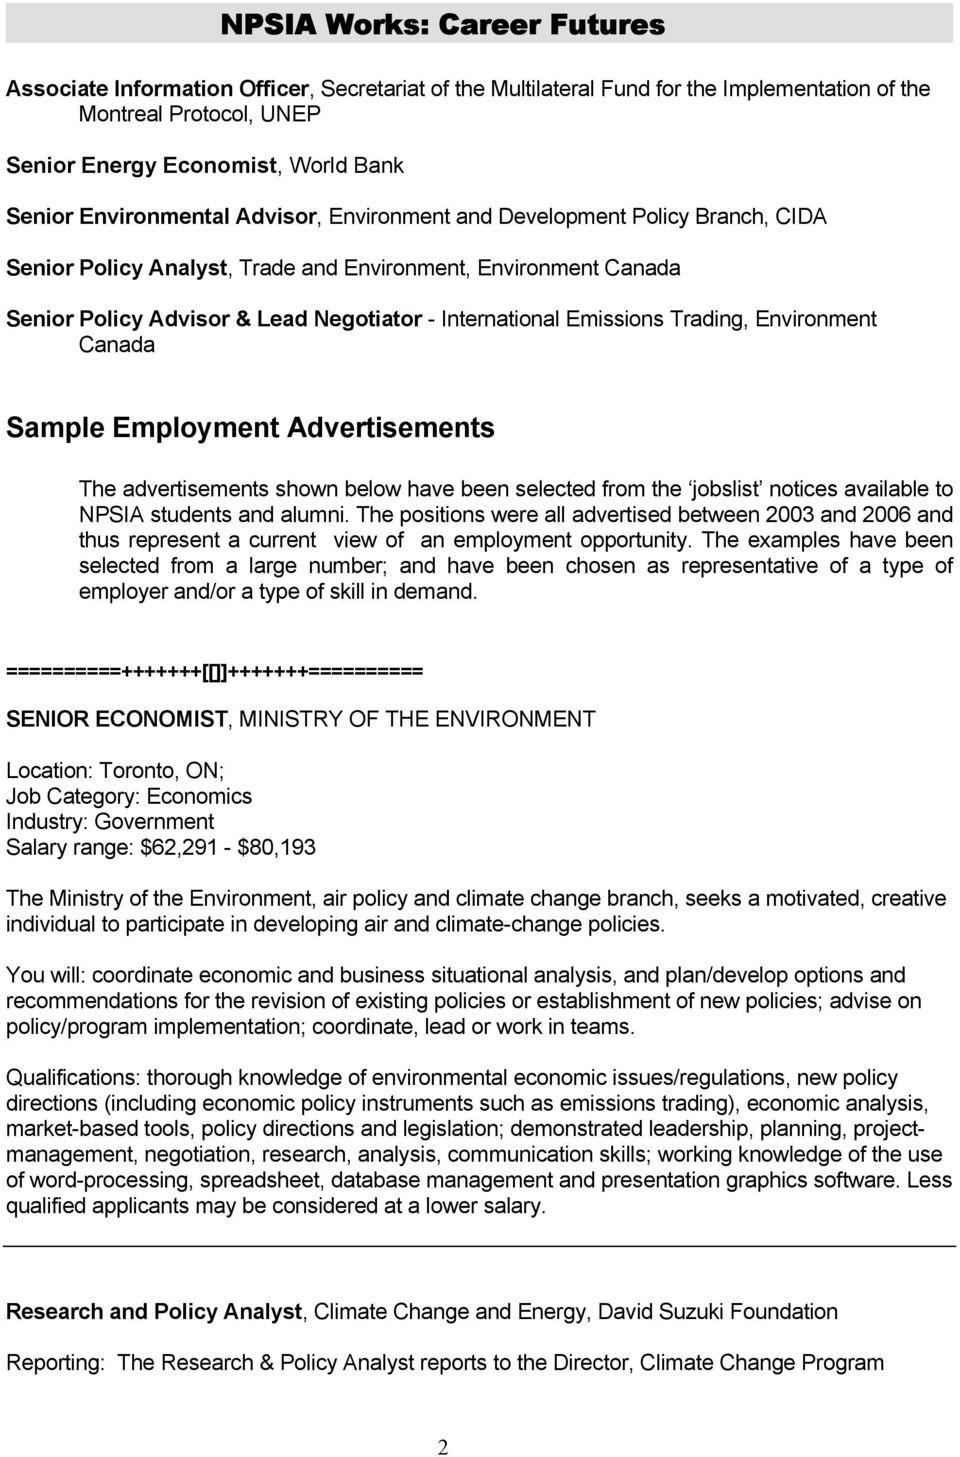 Sample Employment Advertisements The advertisements shown below have been selected from the jobslist notices available to NPSIA students and alumni.